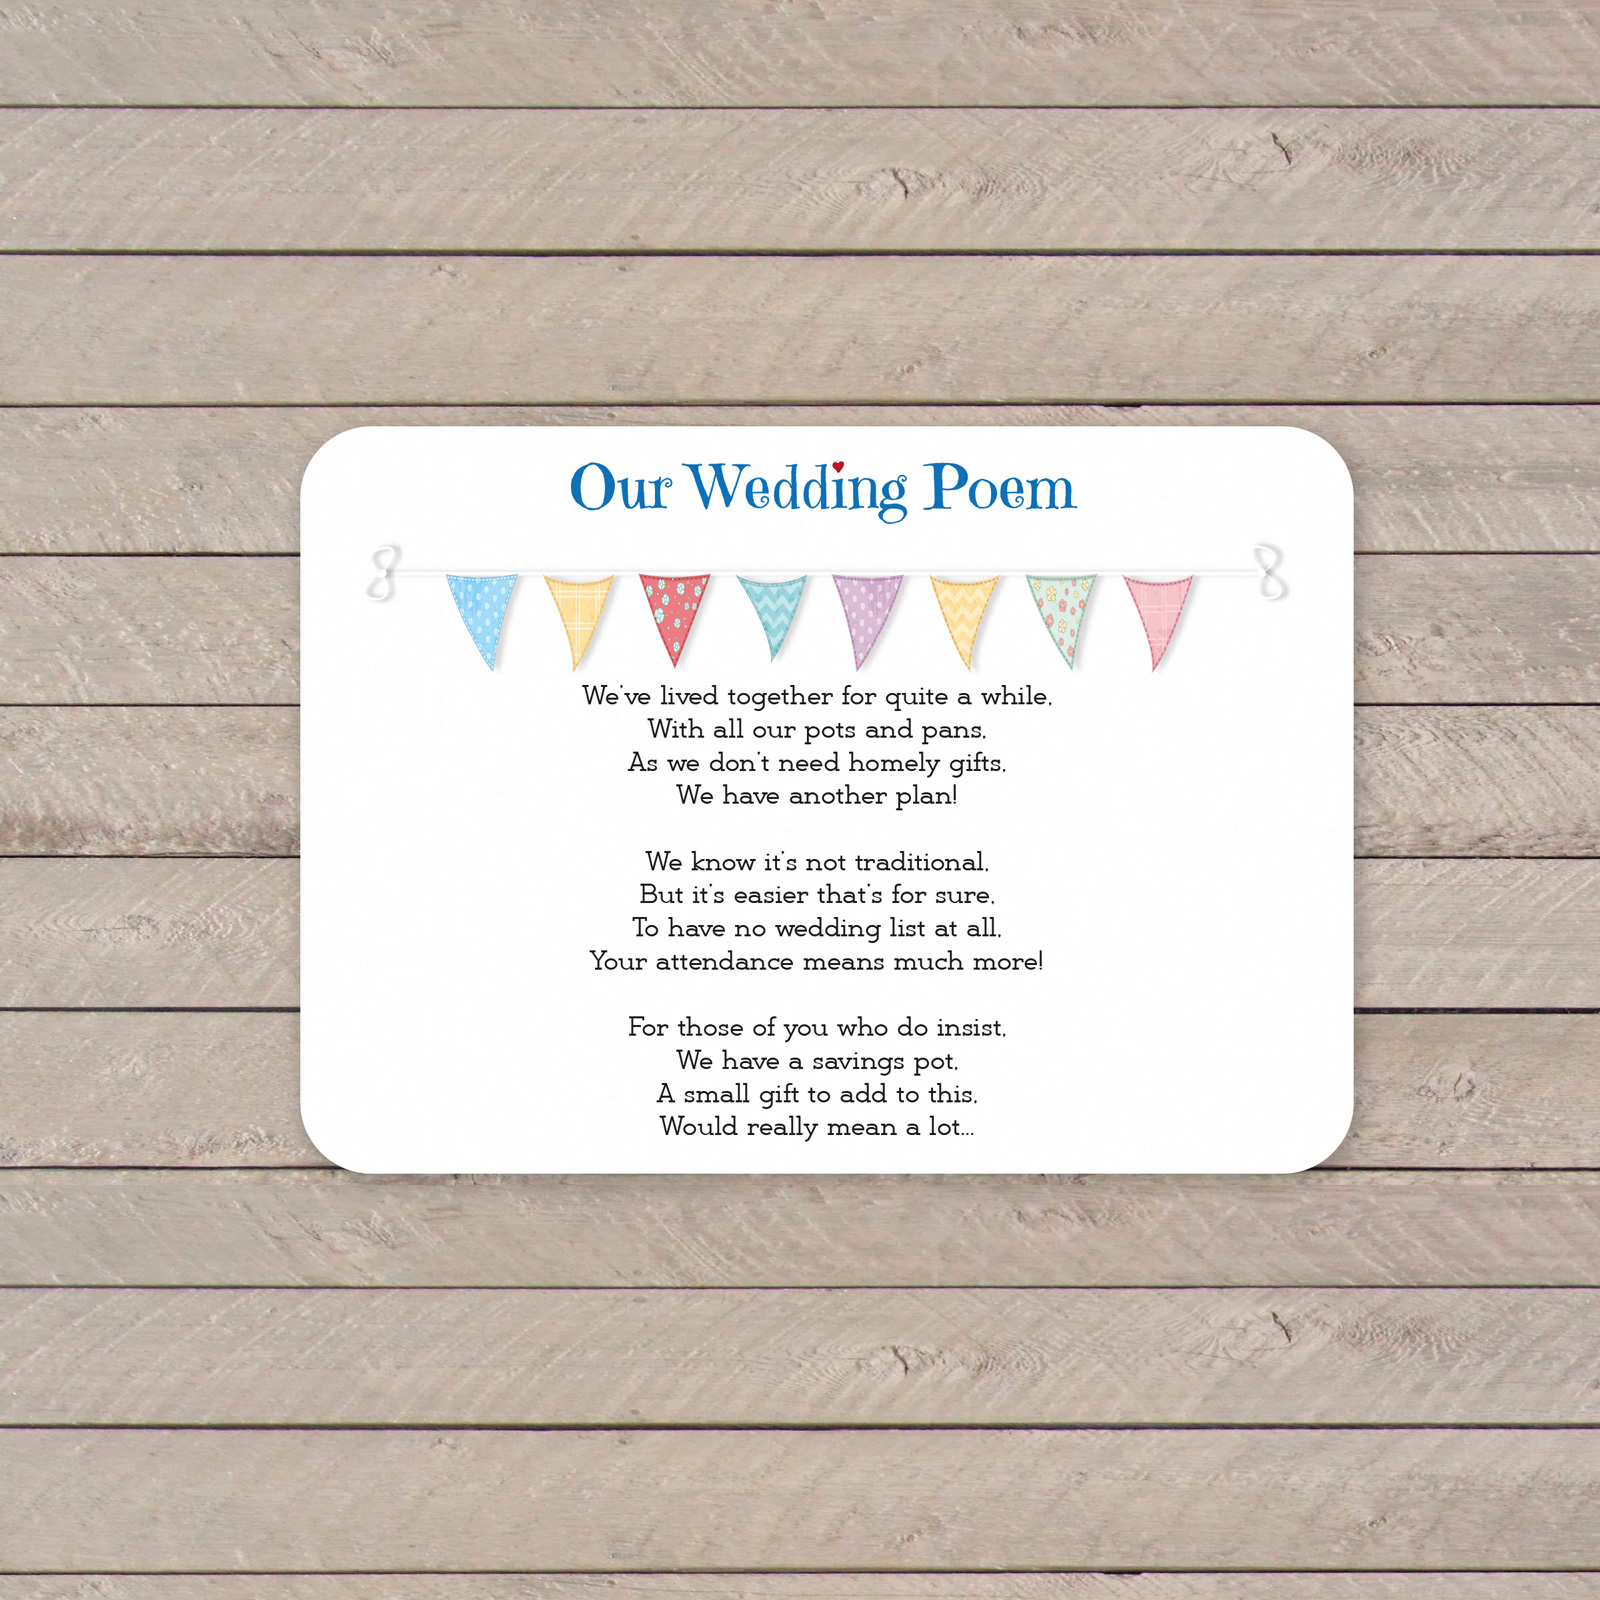 Poem cards from £0.42 ea